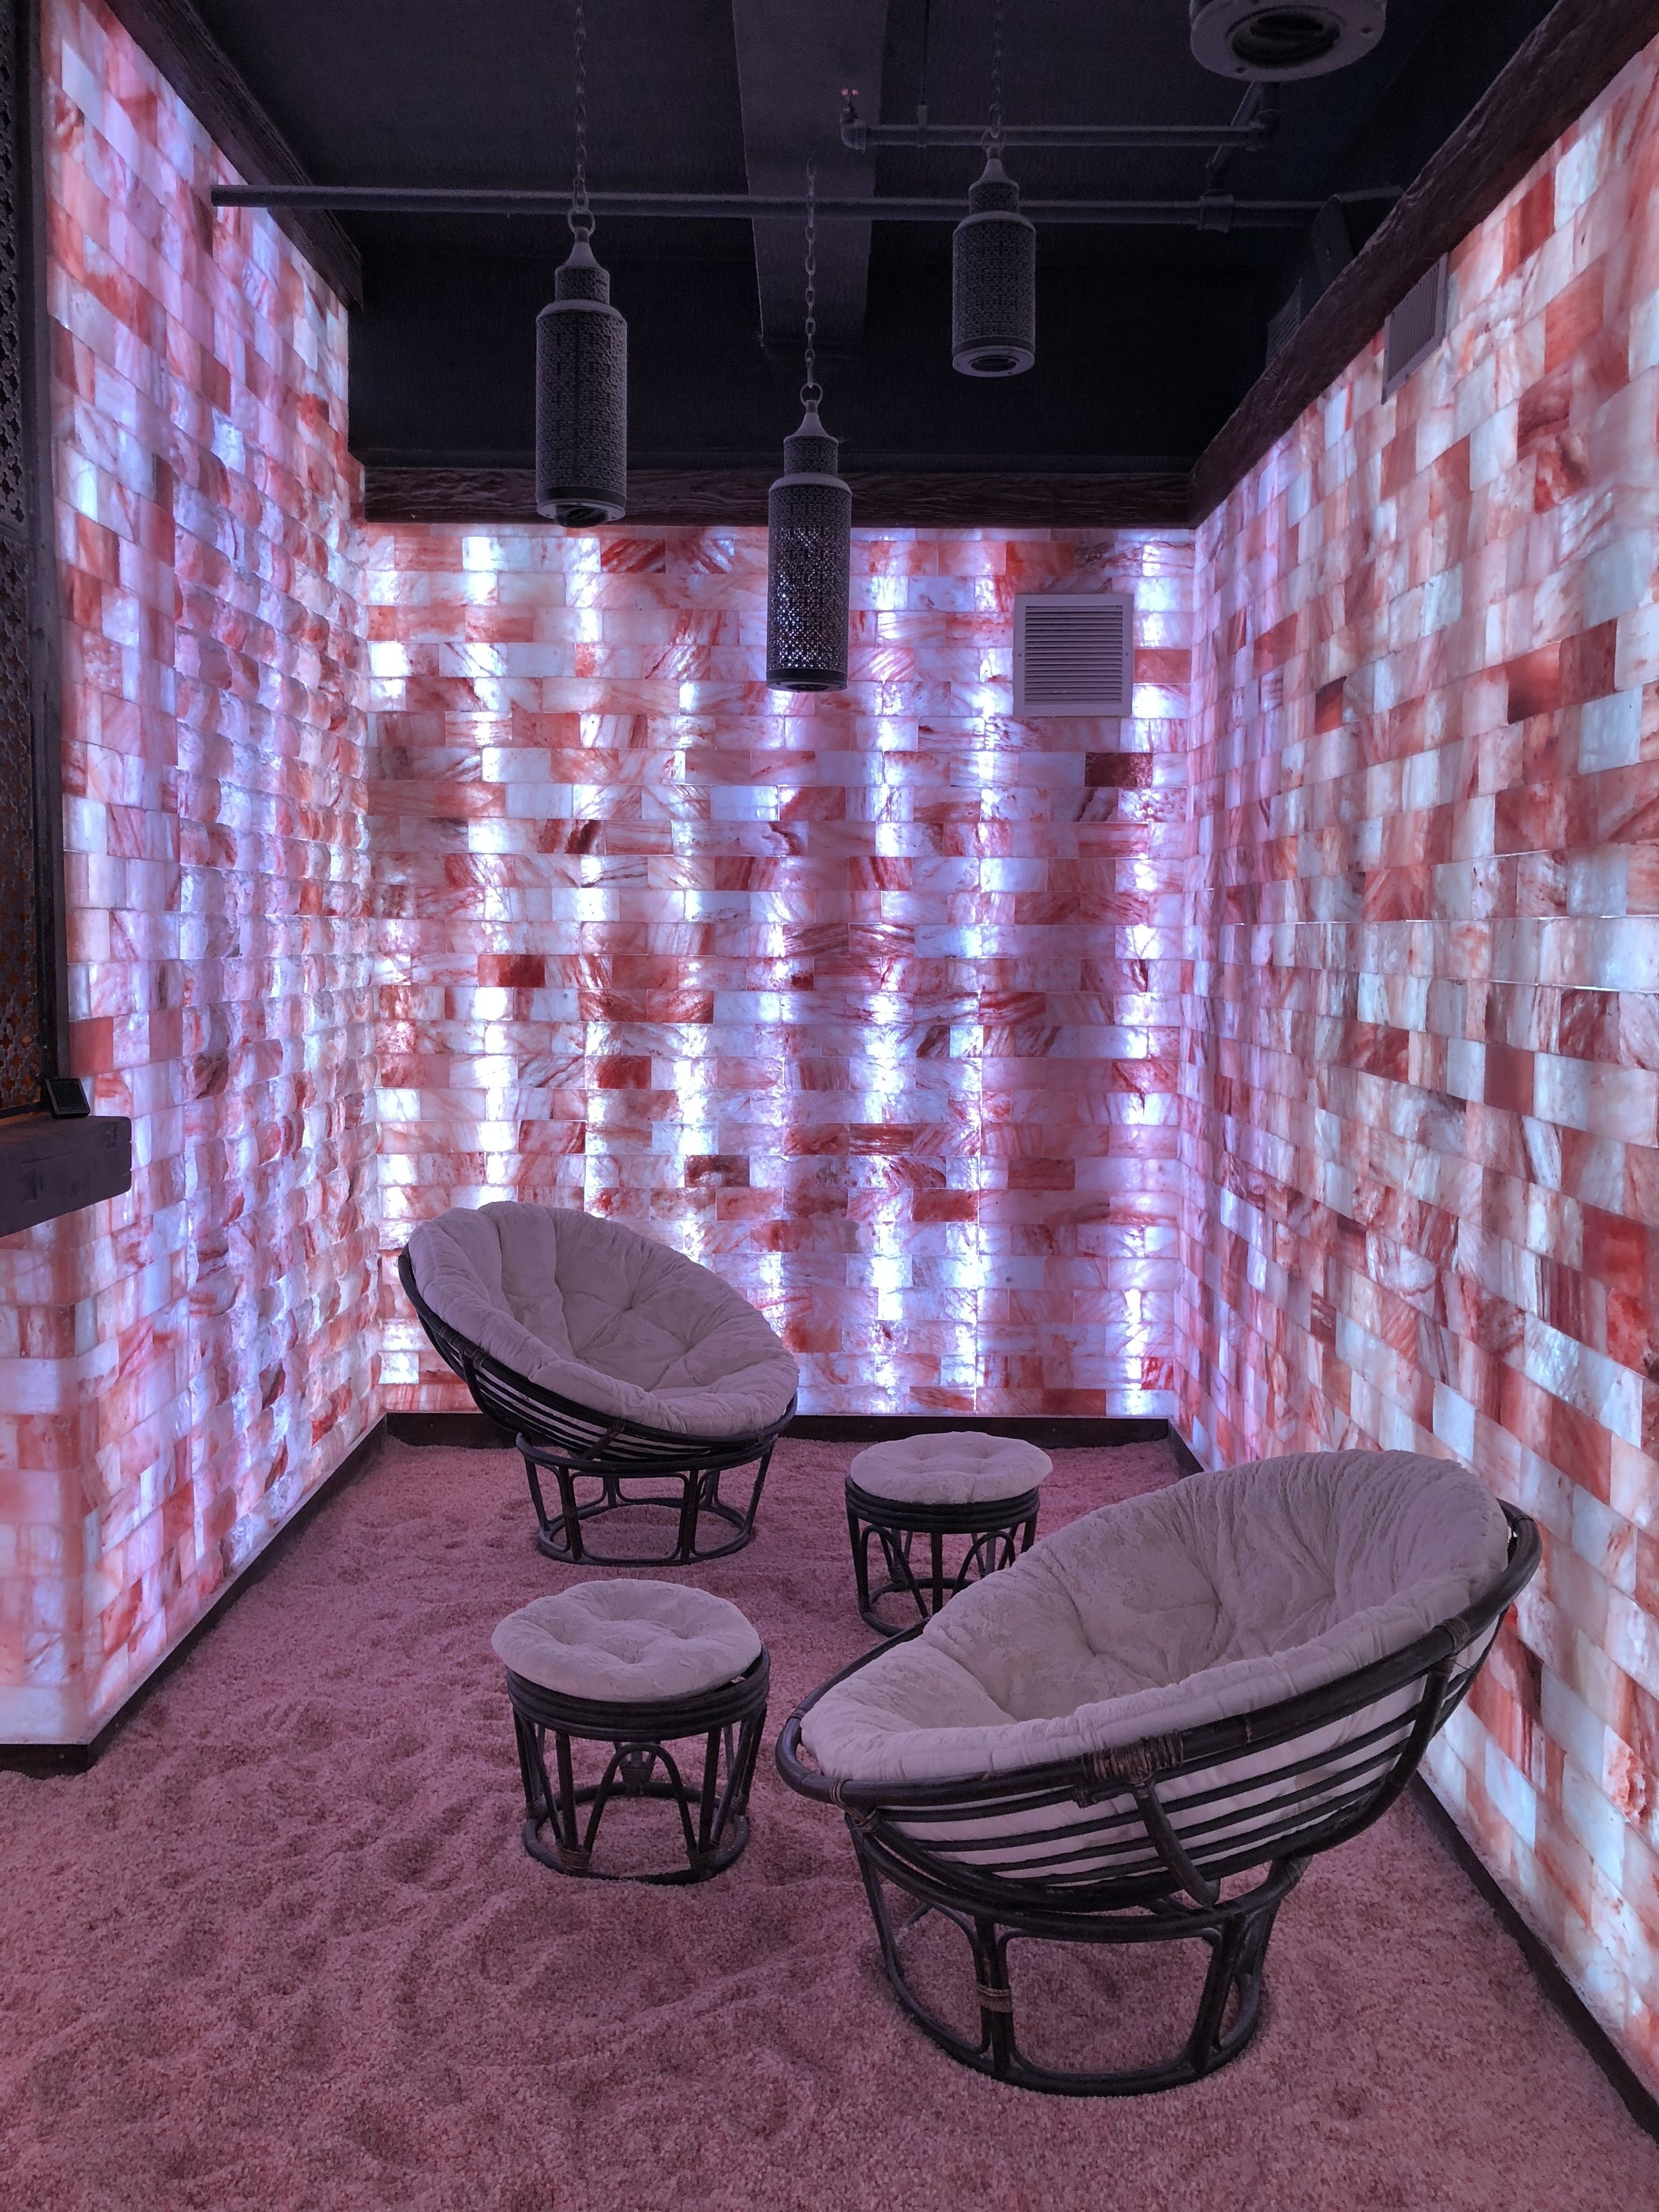 Salt therapy, also called halotherapy, is a holistic method that reproduces the natural micro climate of a salt cave by dispersing saline aerosol in a high concentration in a room whose surfaces are covered with layers of salt.